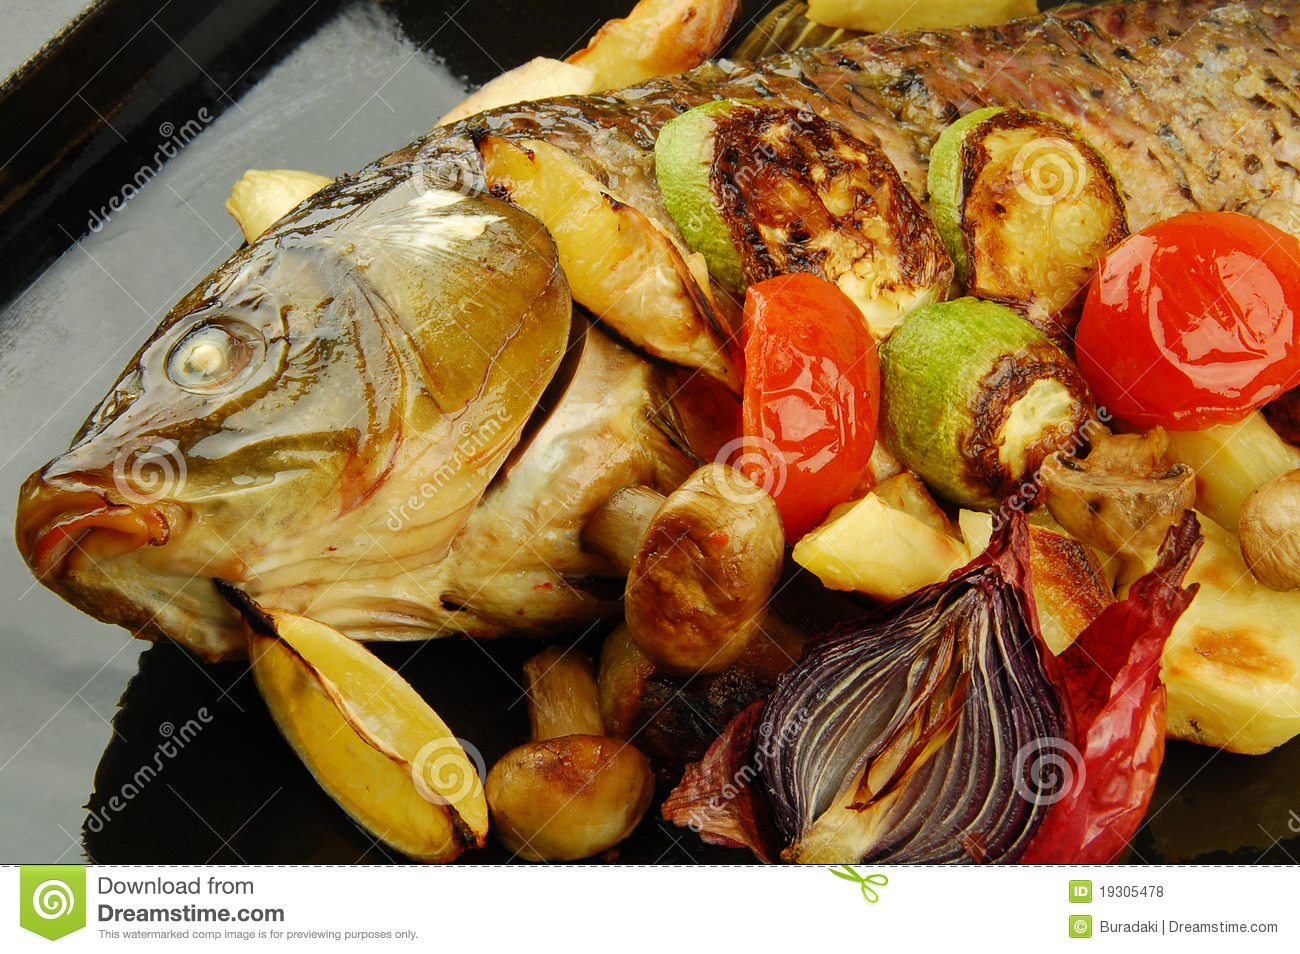 Baked fish with vegetables royalty free stock photos for What vegetables go with fish